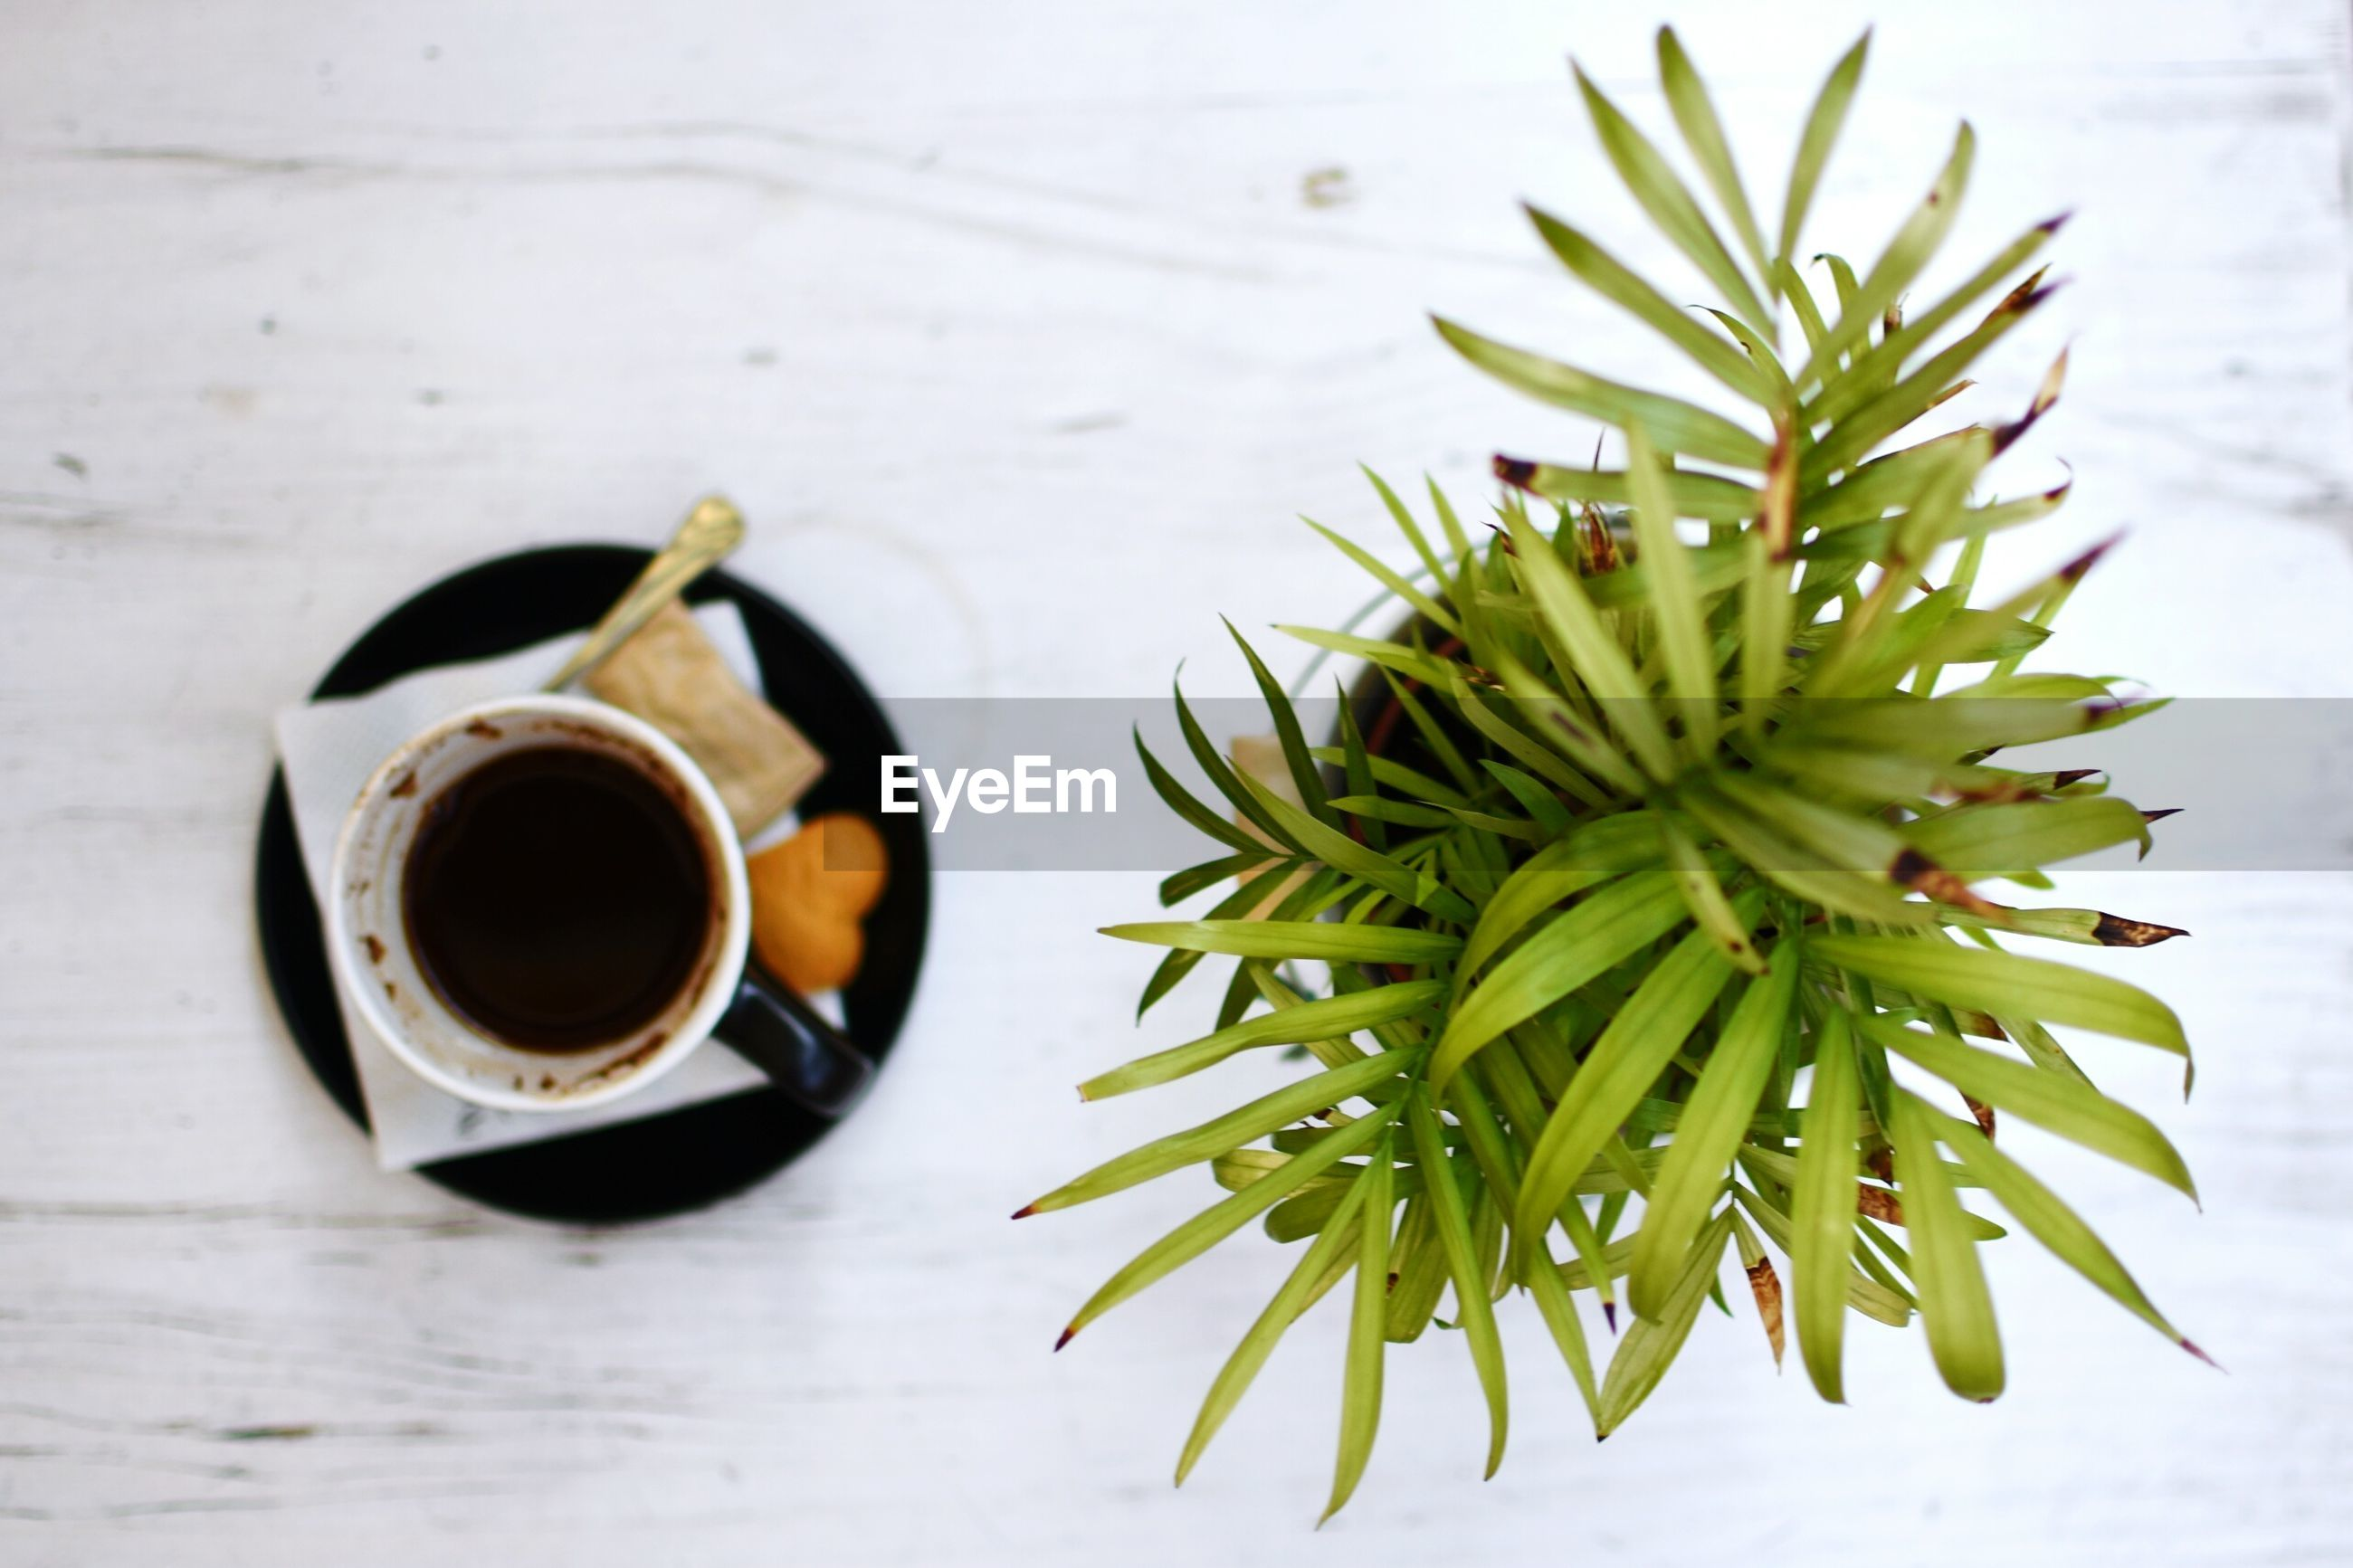 High angle view of black coffee by potted plant on table